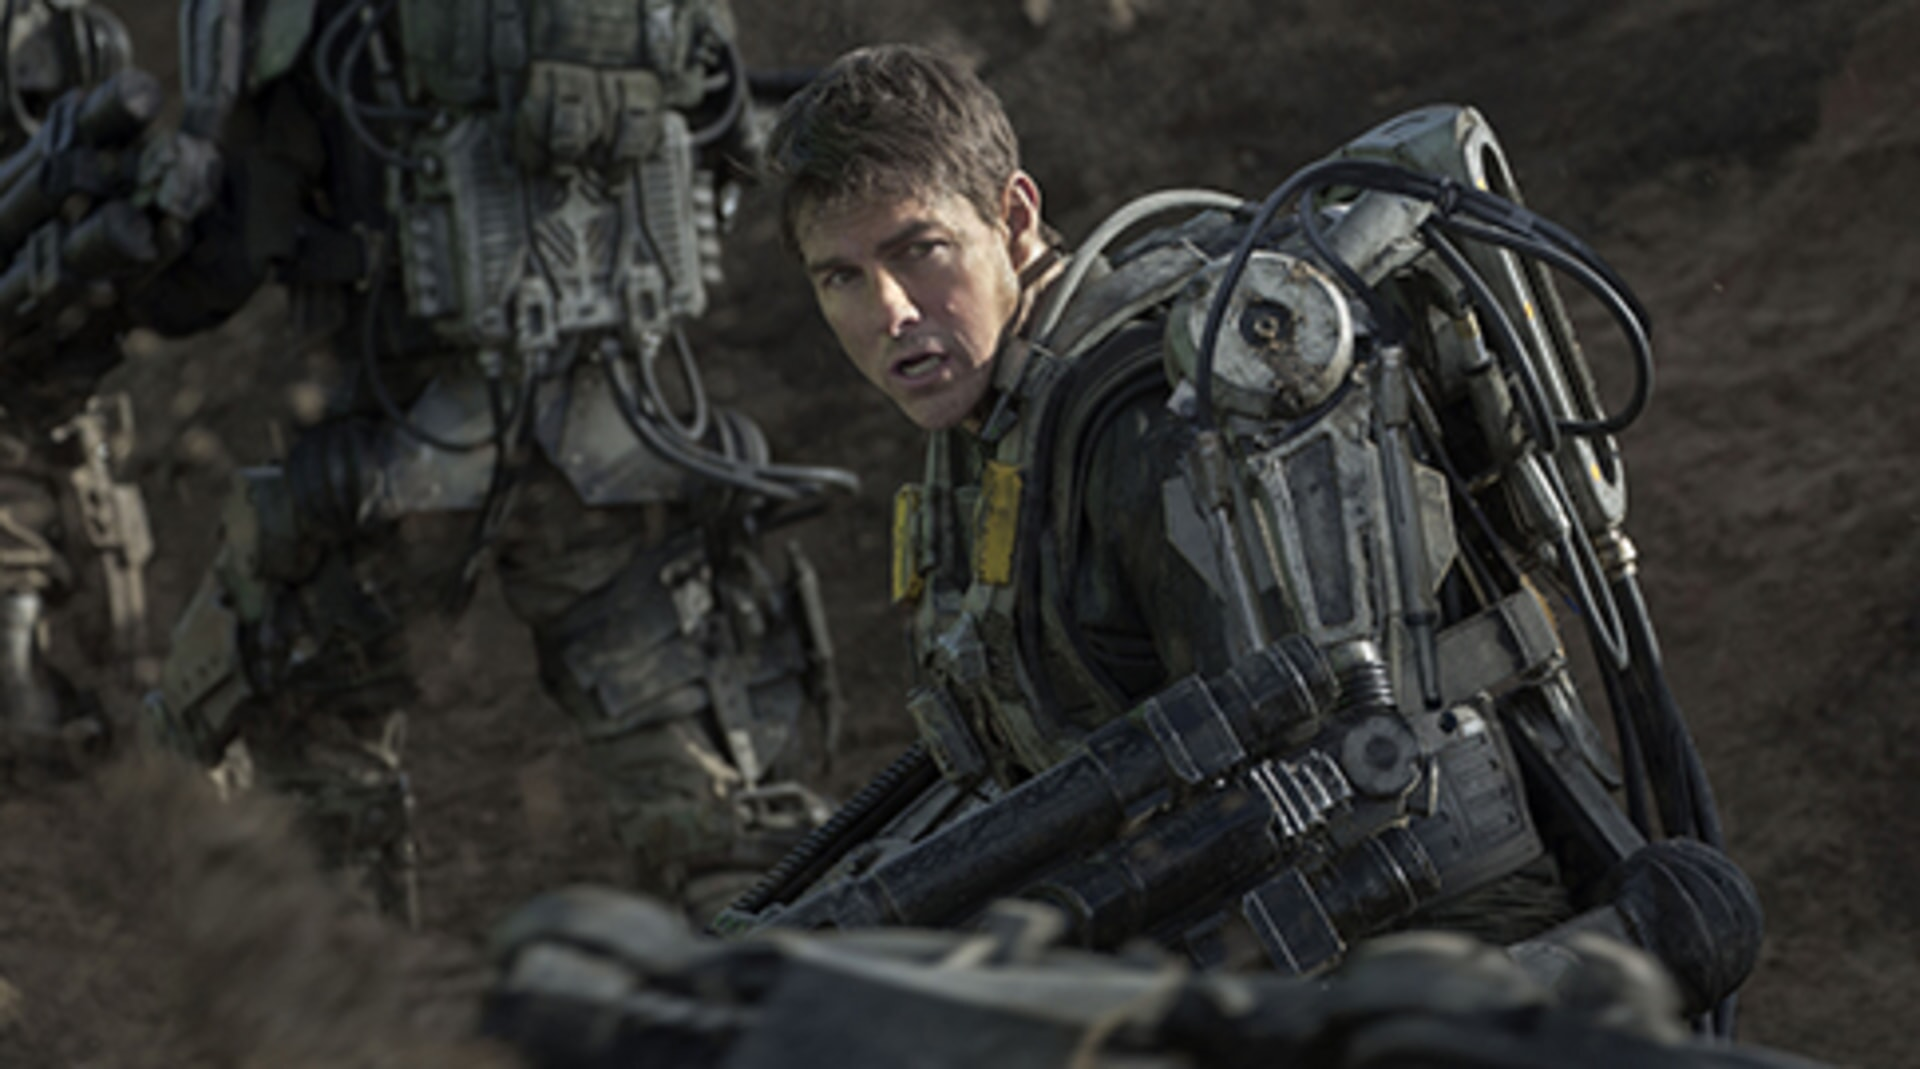 Edge of Tomorrow - Image 1